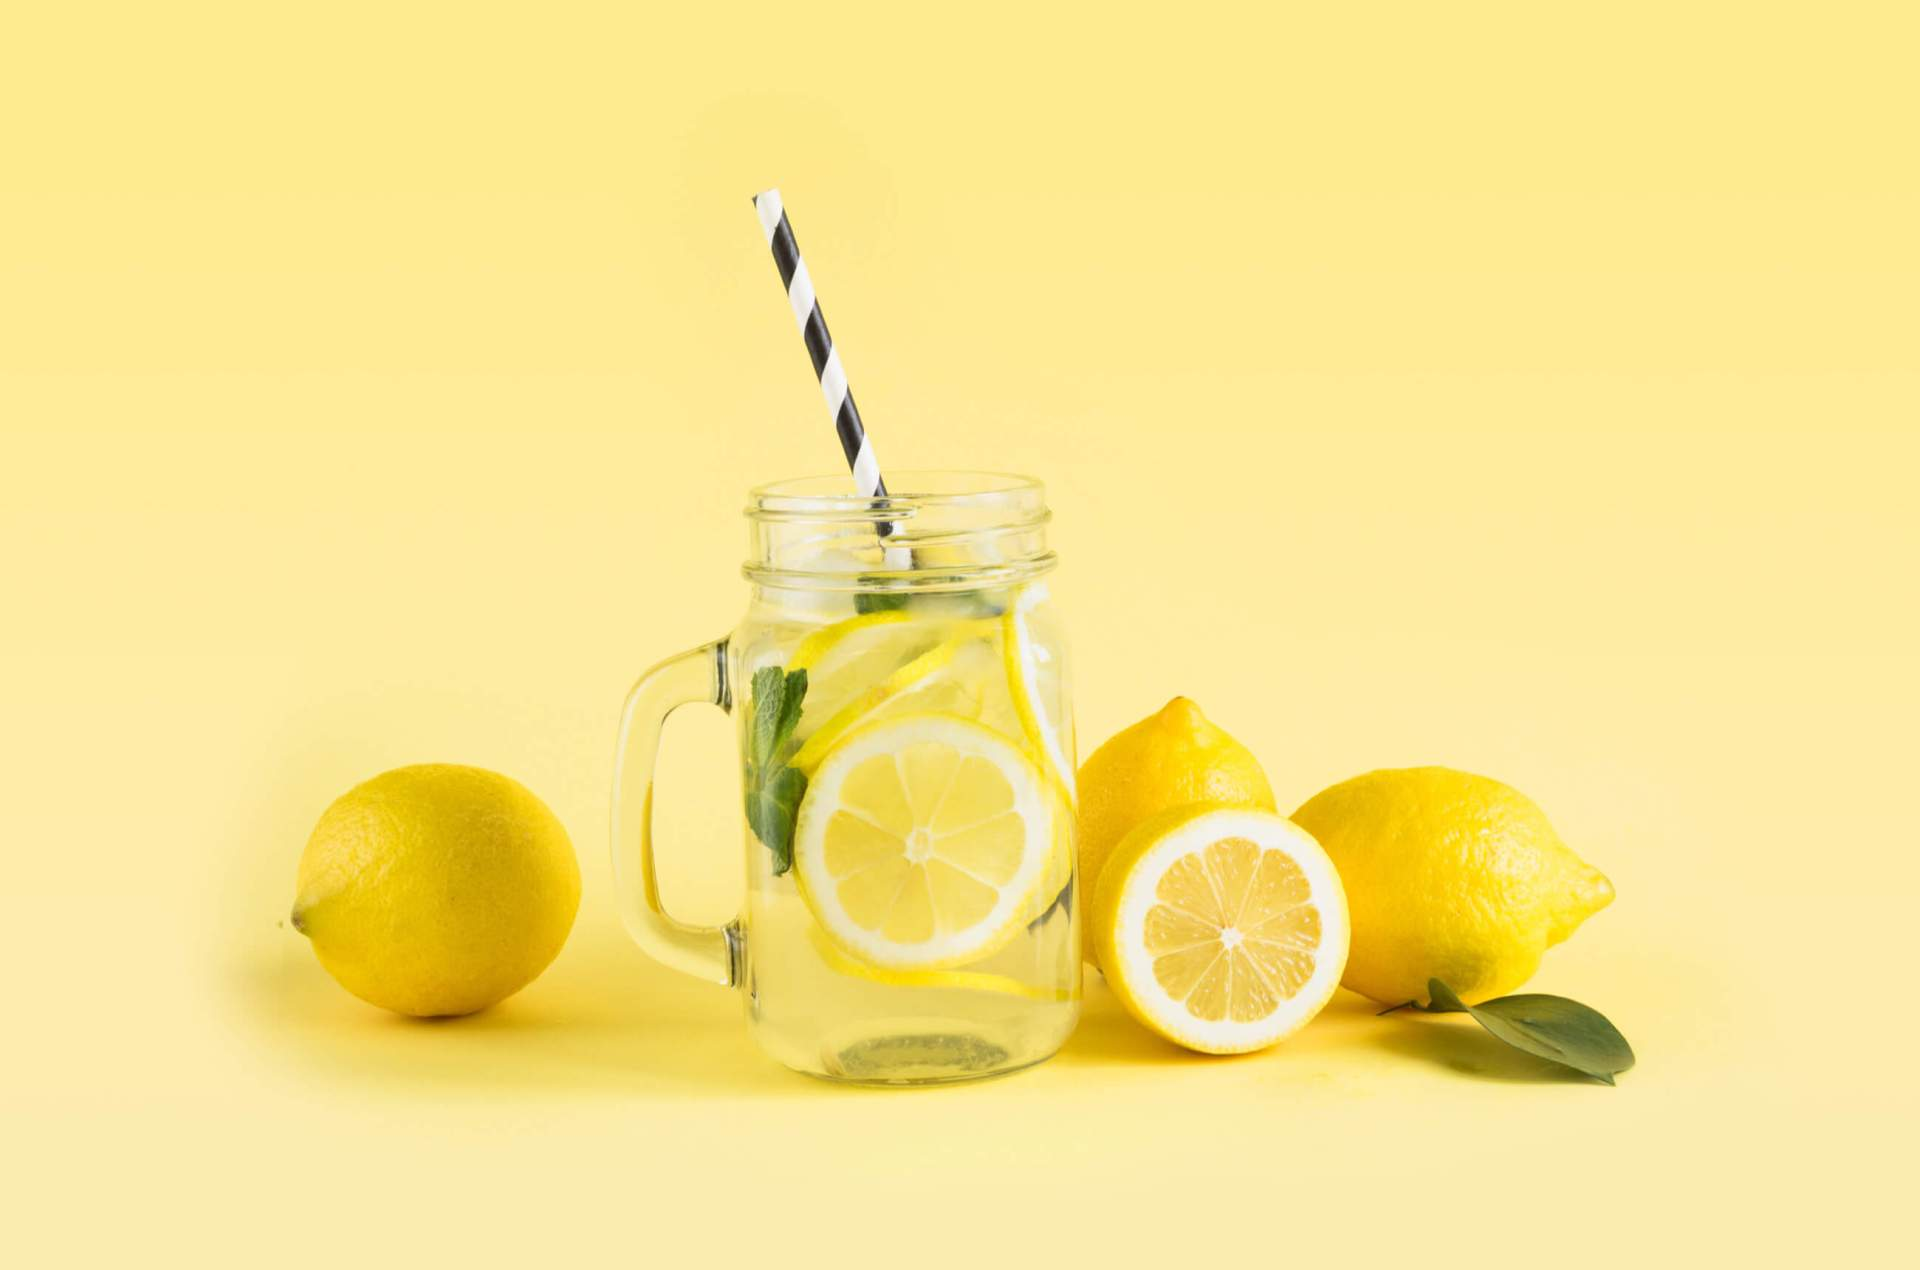 A glass of lemonade from a lemonade stand